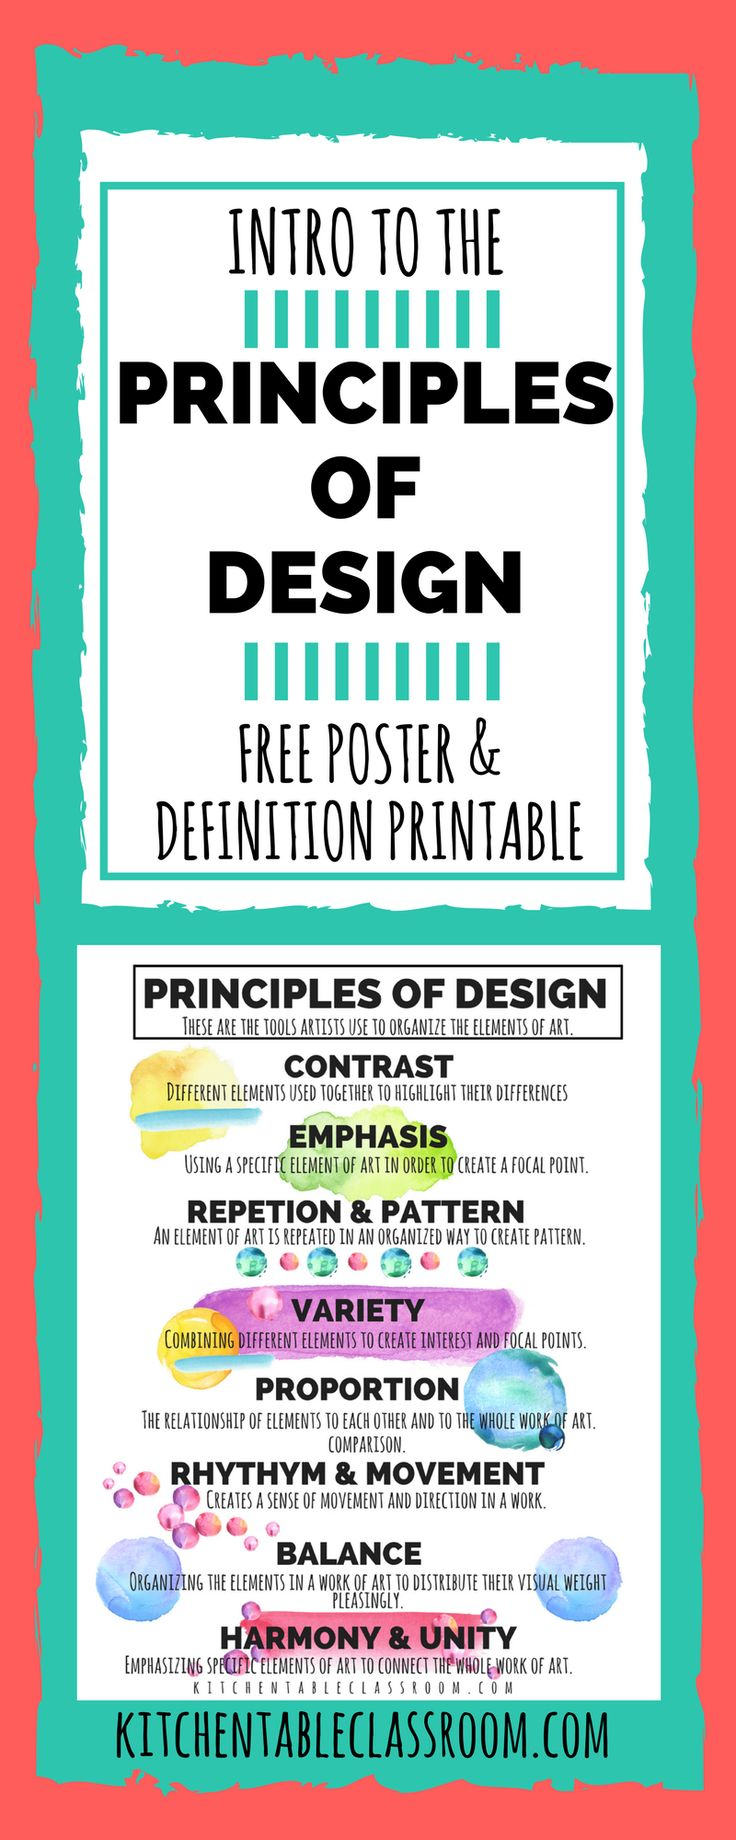 Build a foundation of knowledge by introducing basics such as these principles of design.